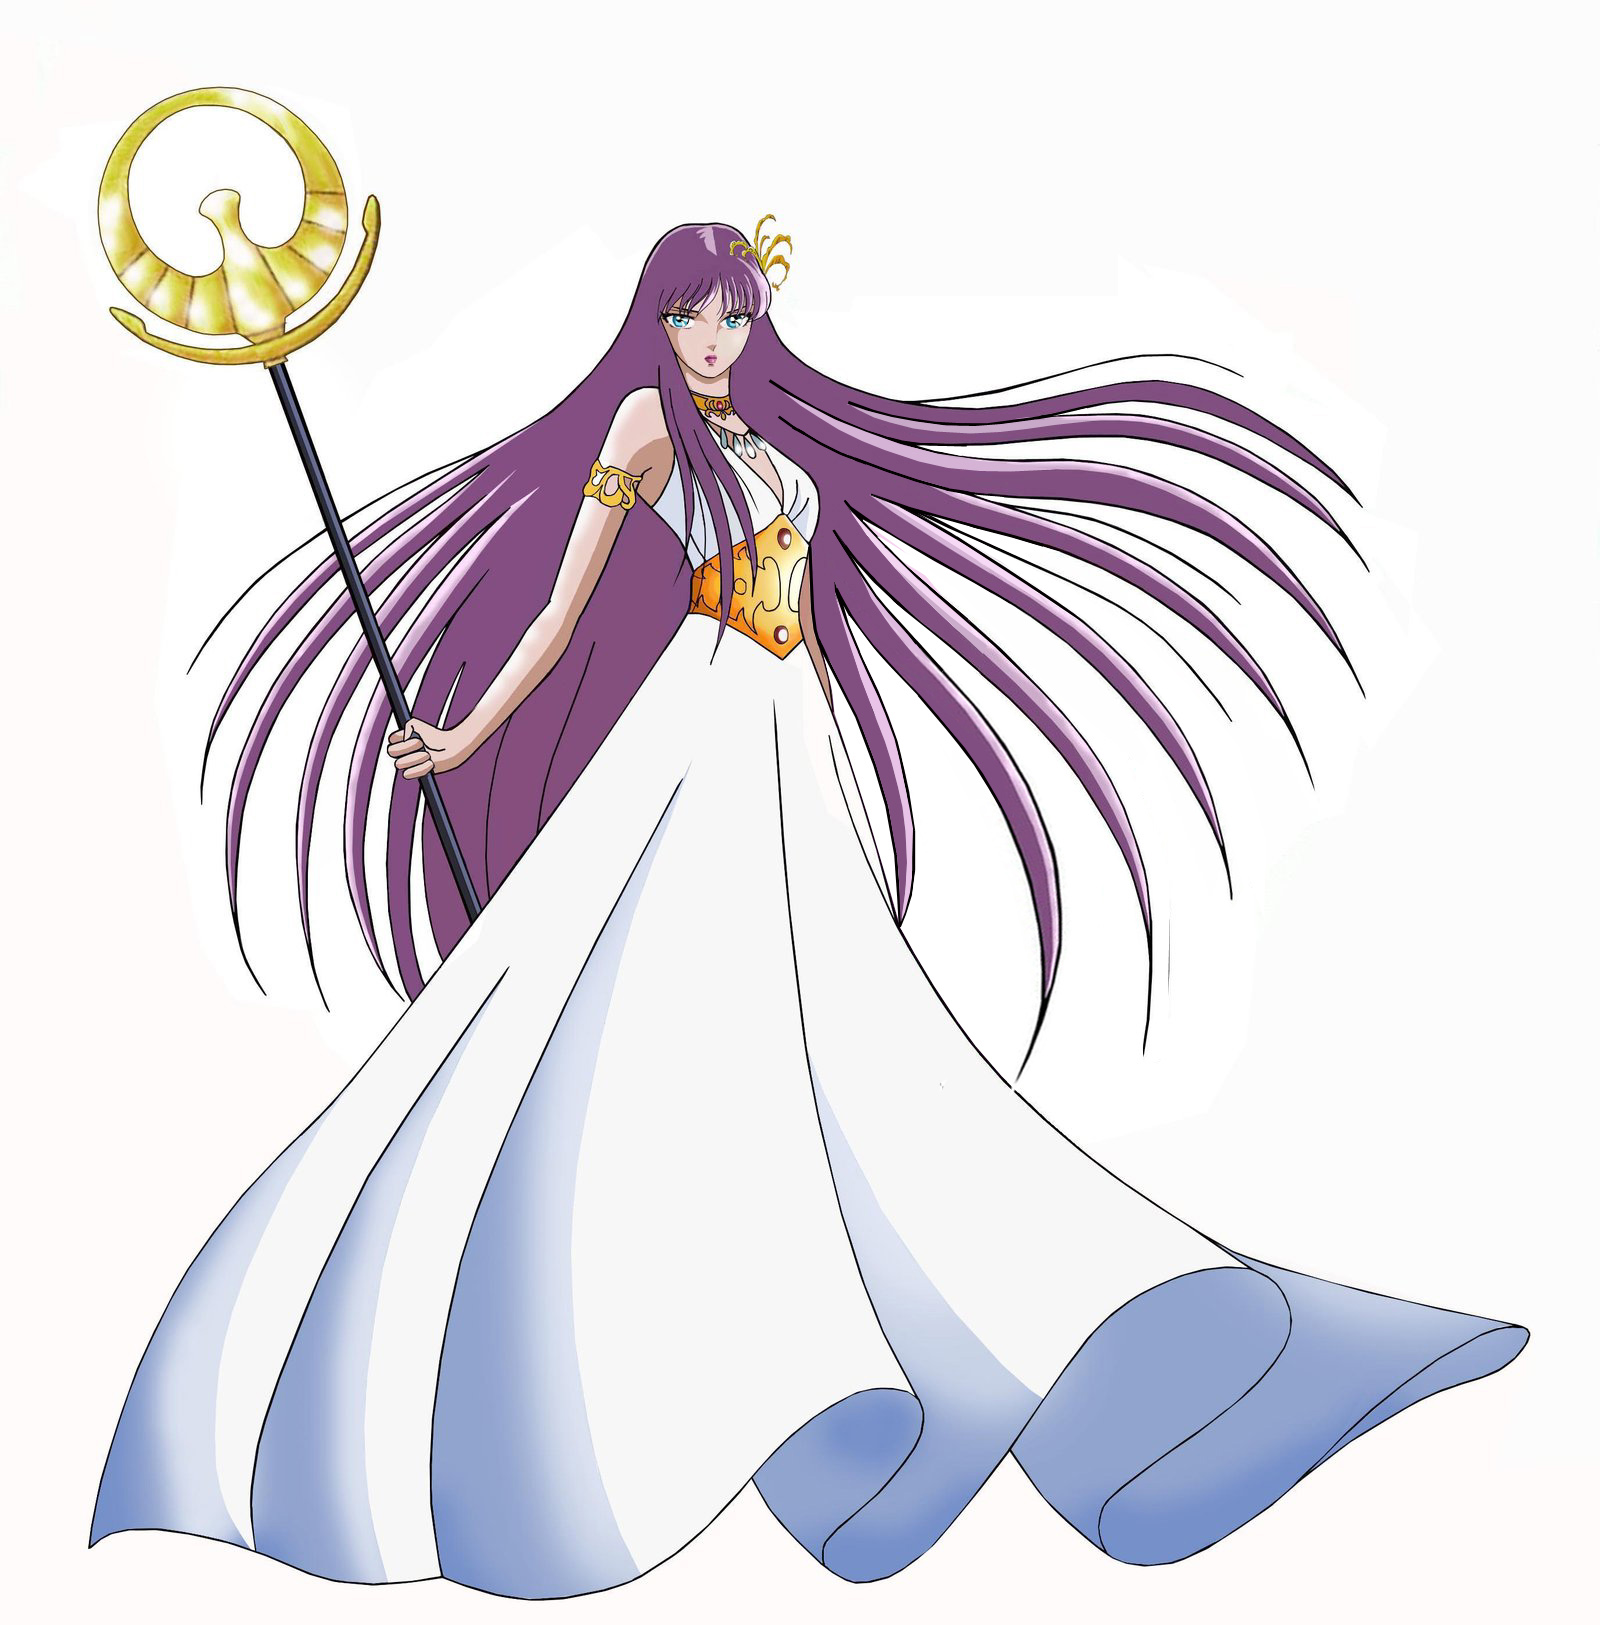 Athena from Saint Seiya: The Lost Canvas - Myth of Hades